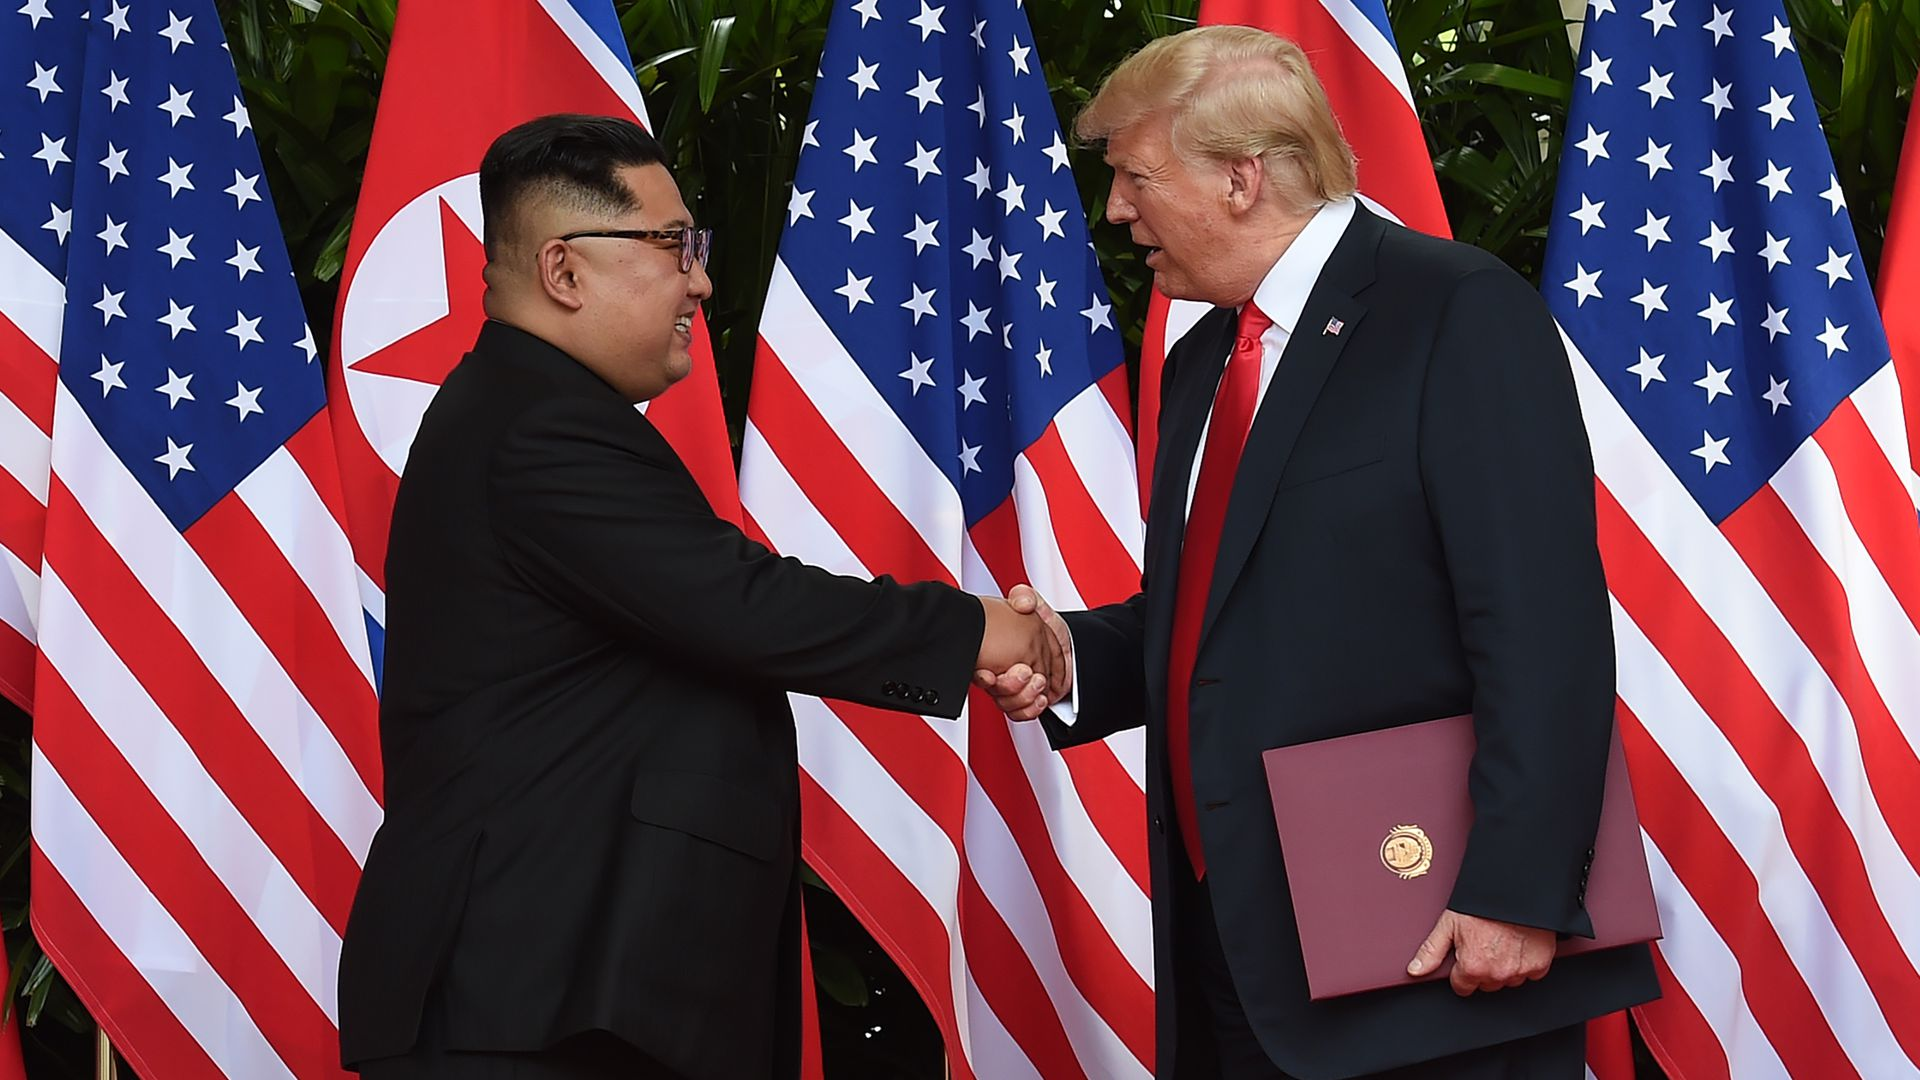 Trump and Kim shake hands at the end of the summit